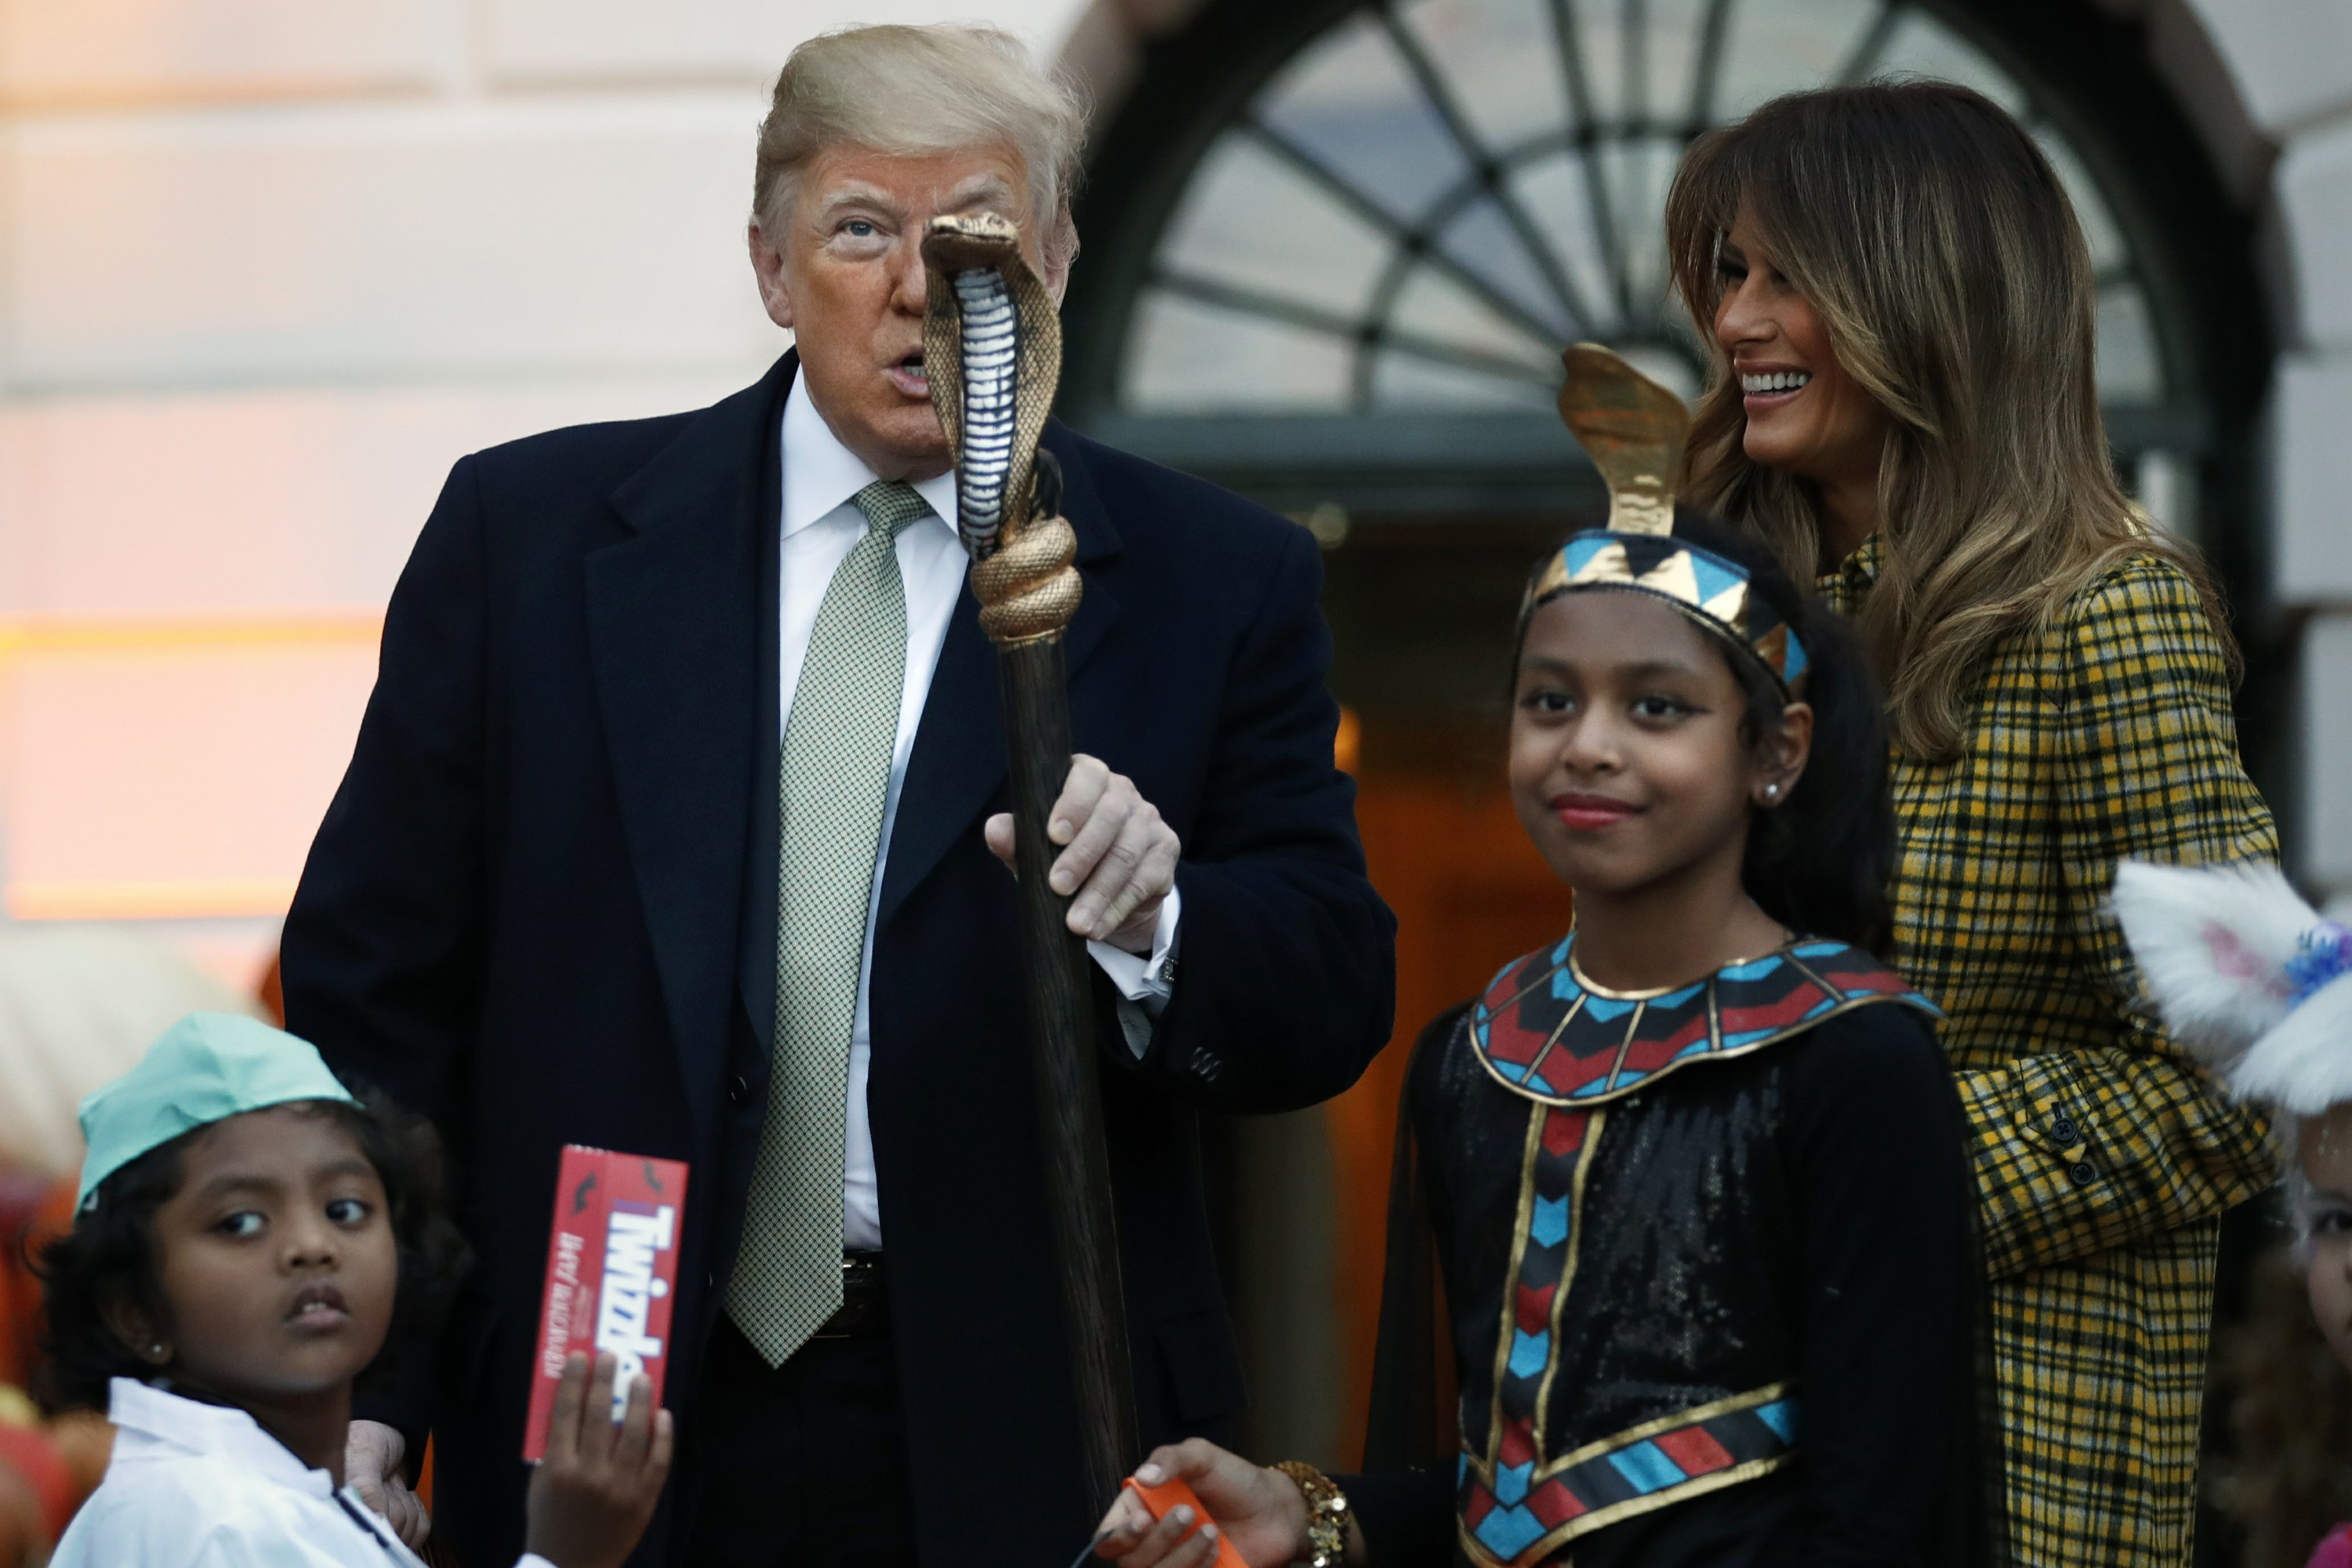 President Trump marks Halloween at the White House